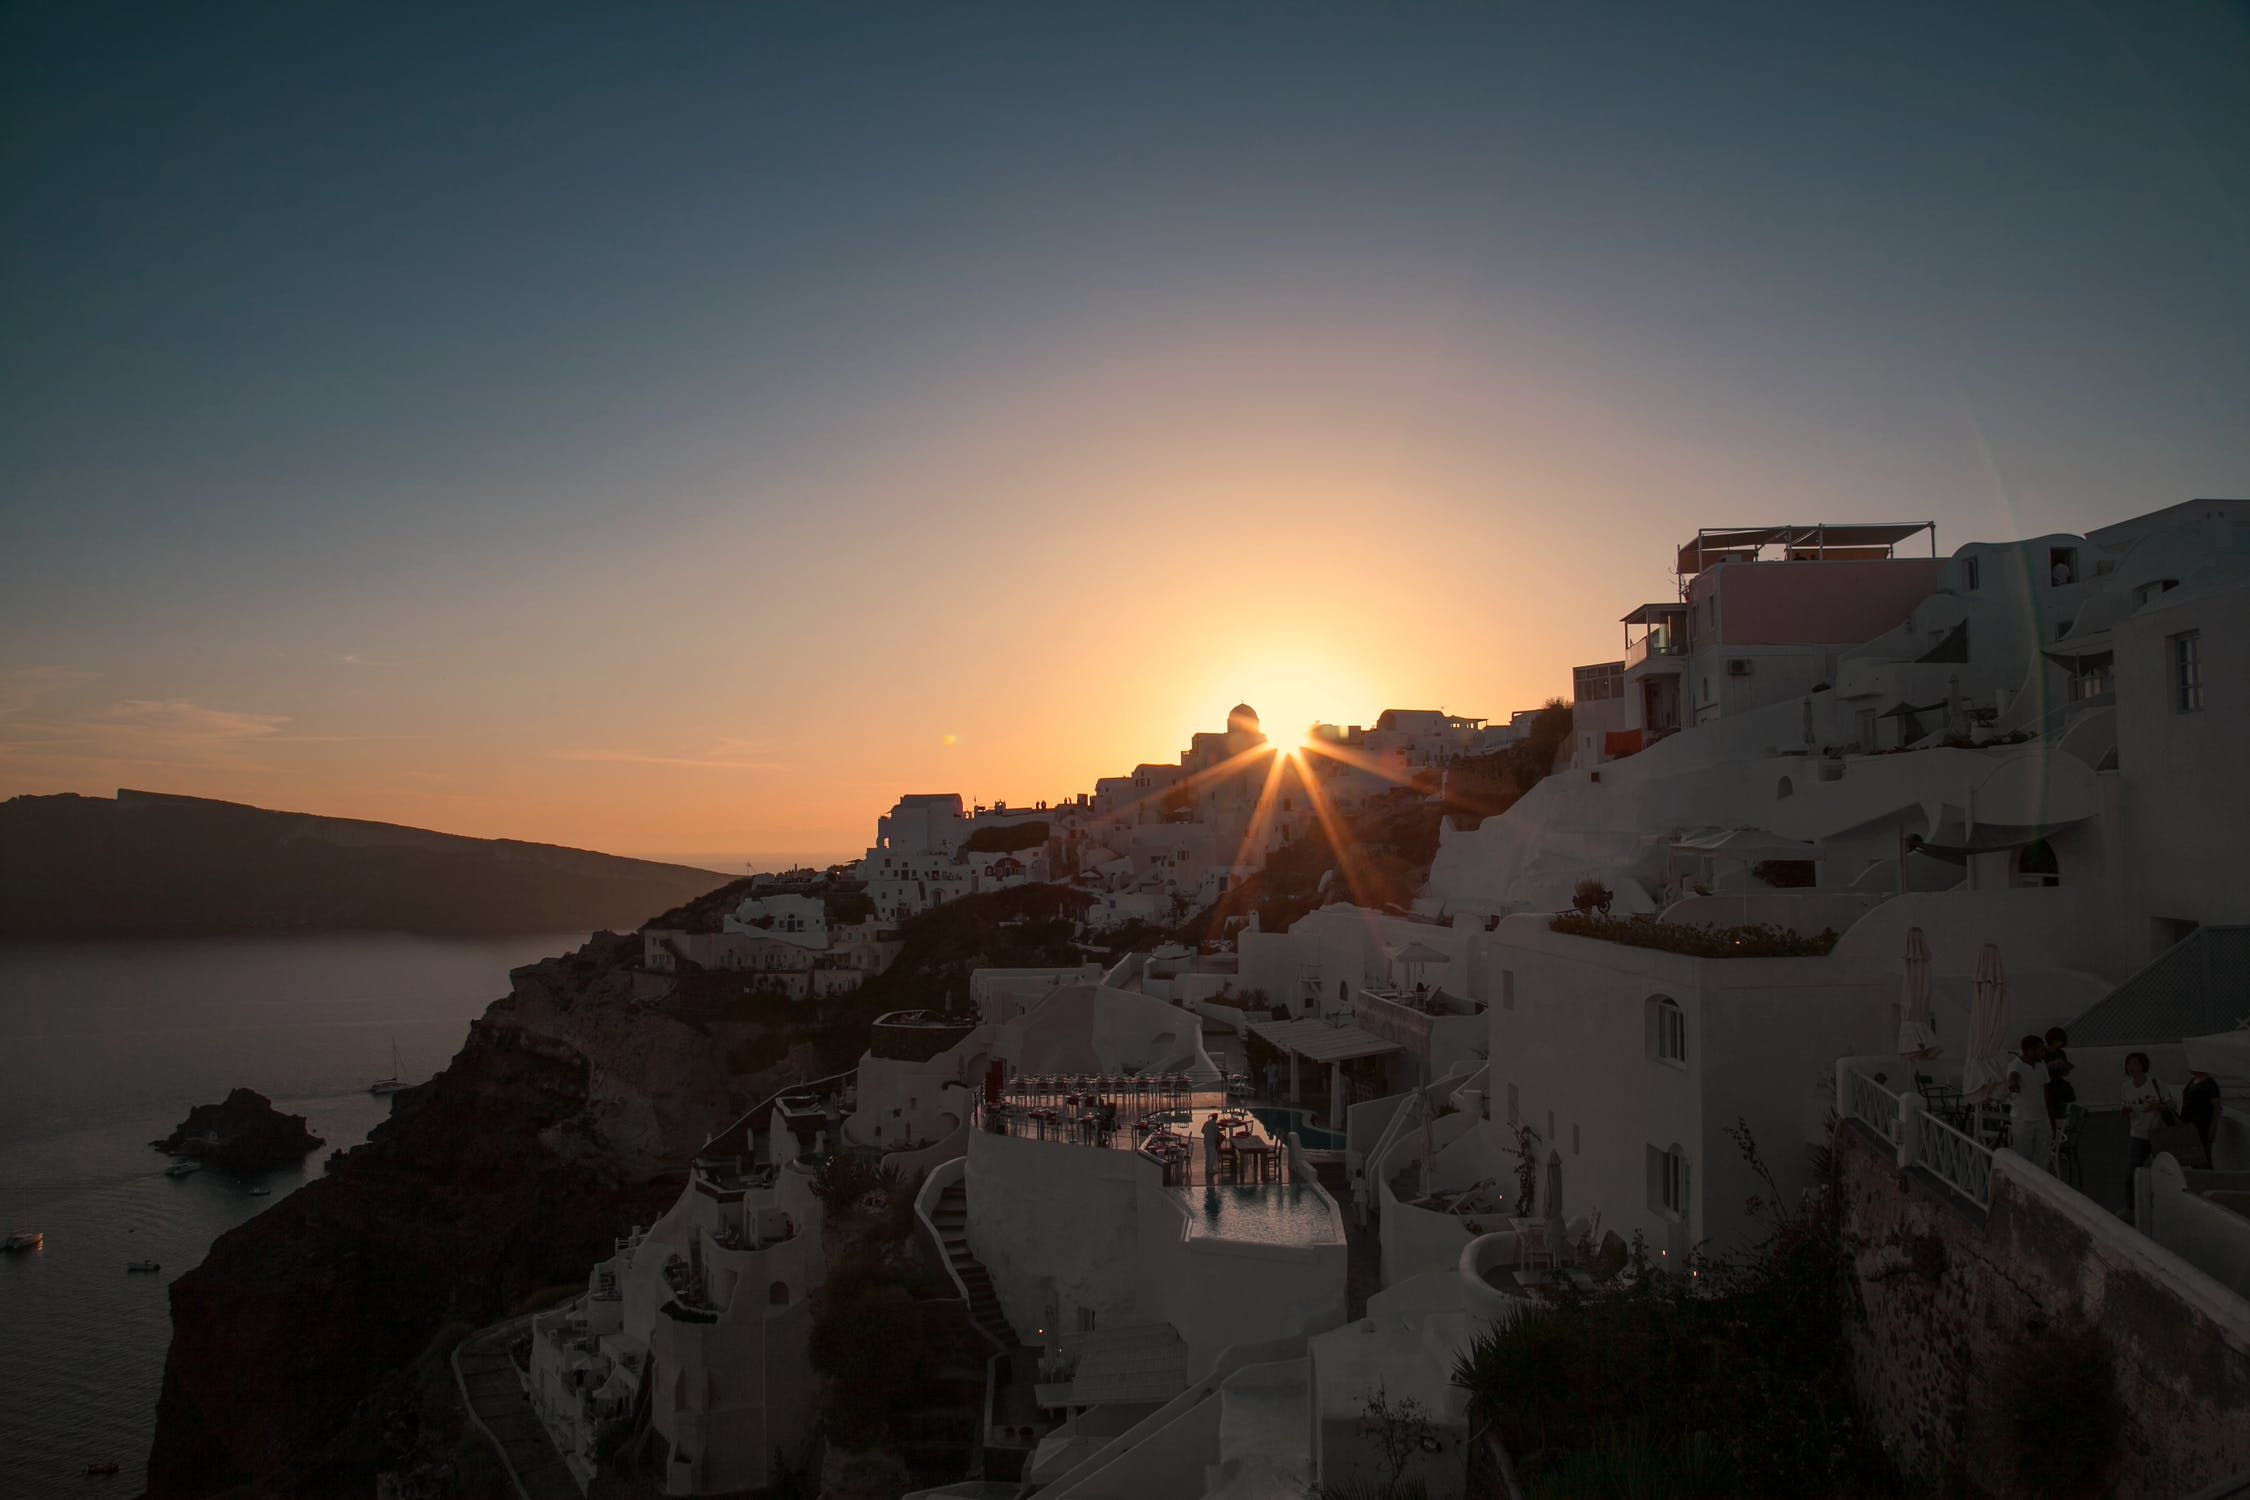 Sunset behind the town photo